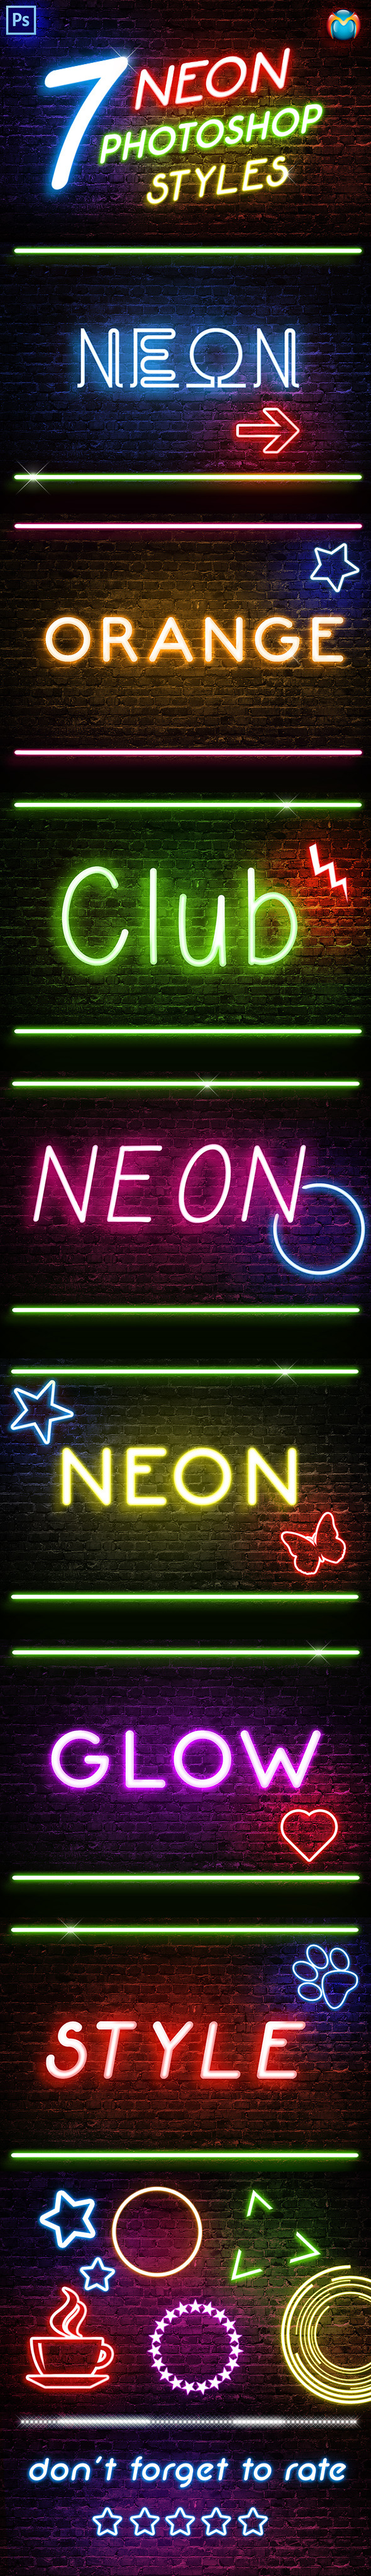 Graphicriver - Neon Photoshop Styles 9956867